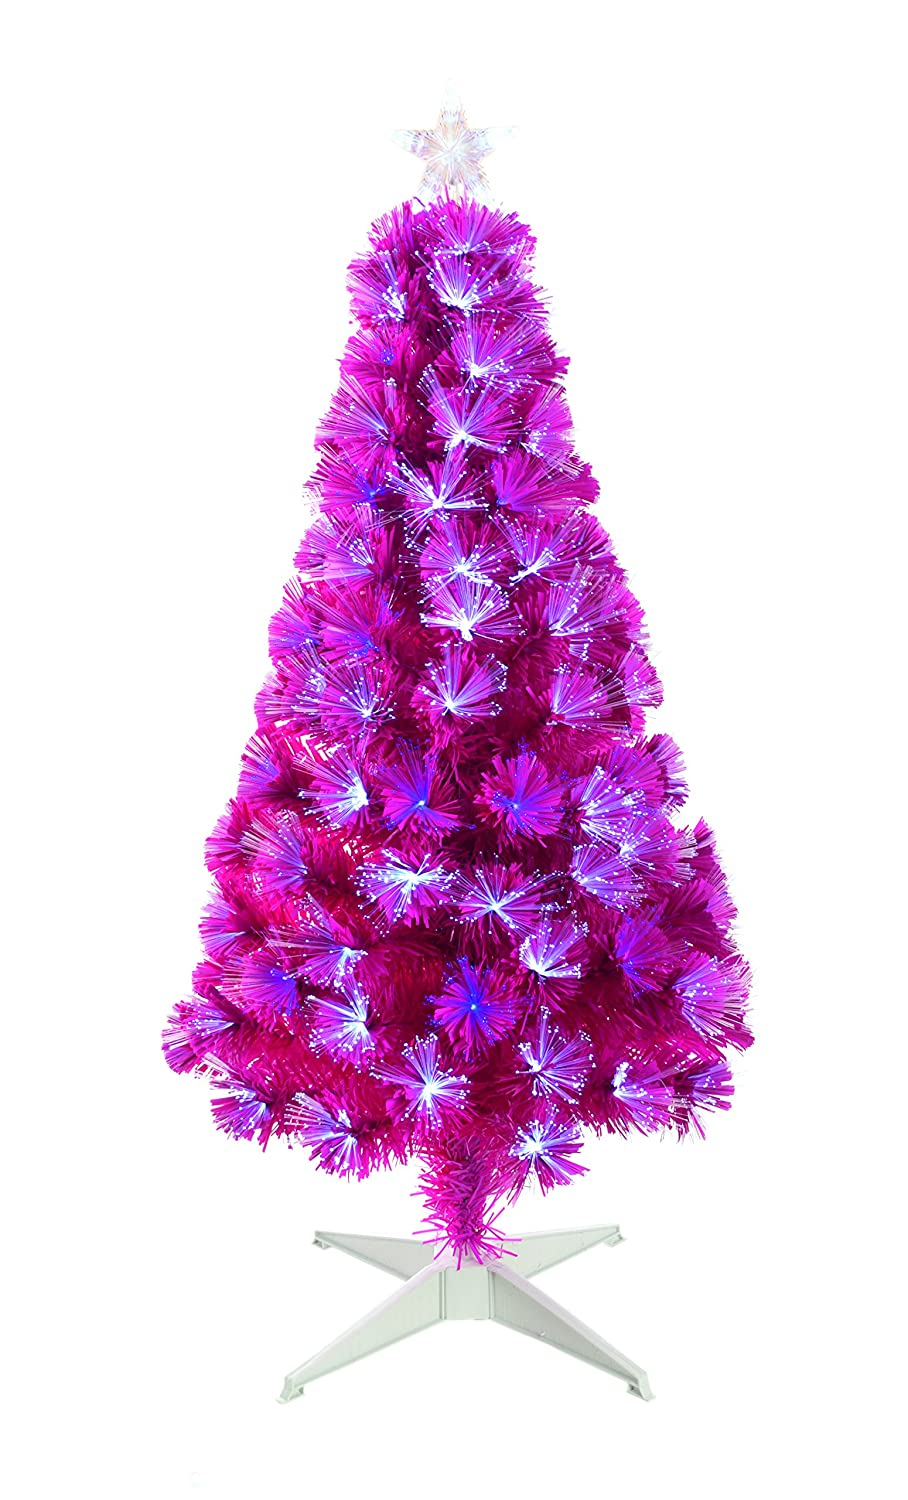 Vibrant Pink Fibre Optic Christmas Tree With White LED Lights 4 Ft:  Amazon.co.uk: Kitchen U0026 Home